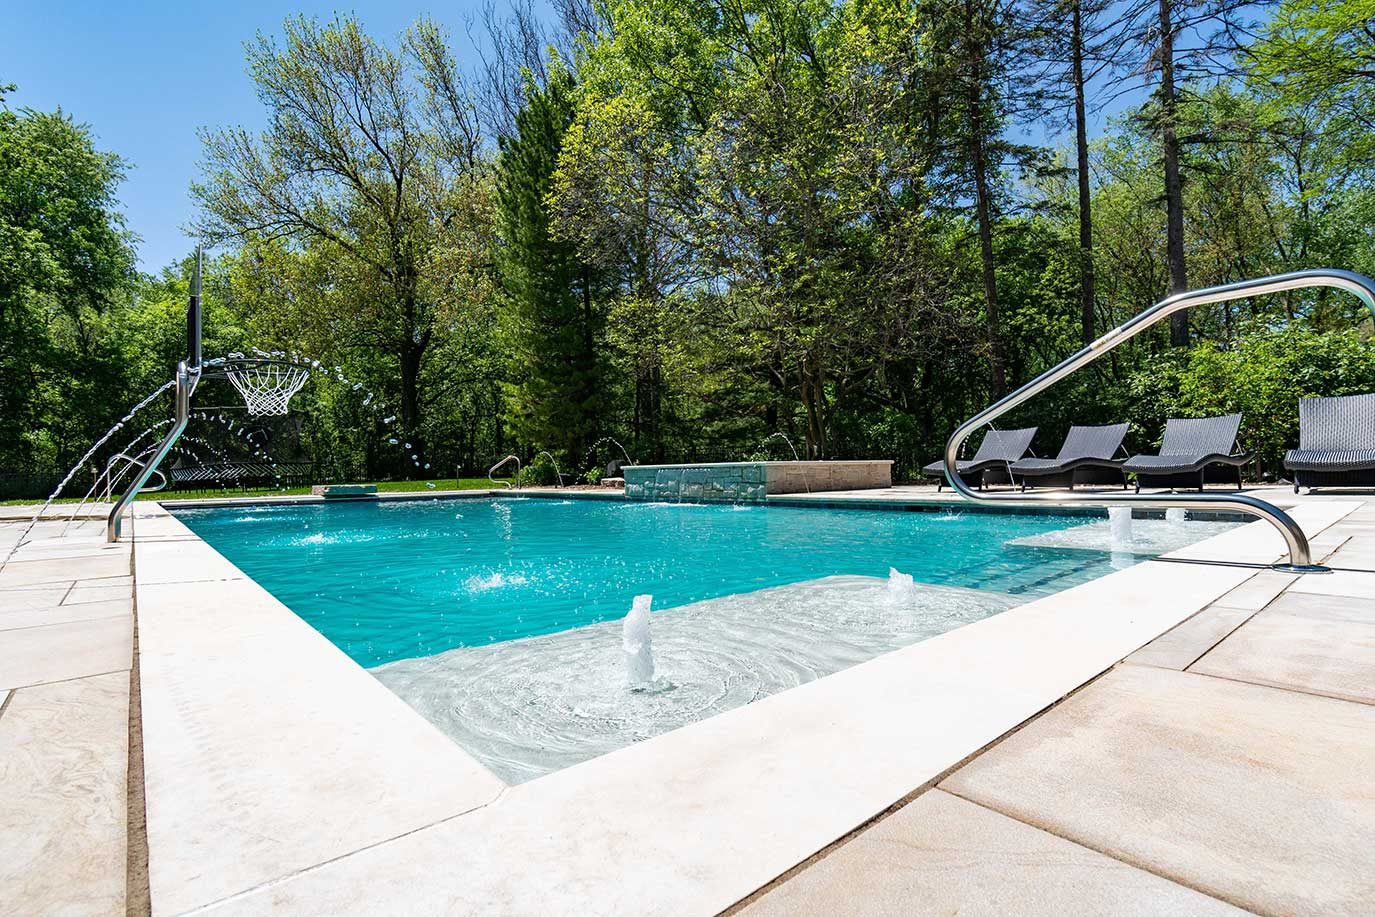 Pool with fountains and basketball hoop